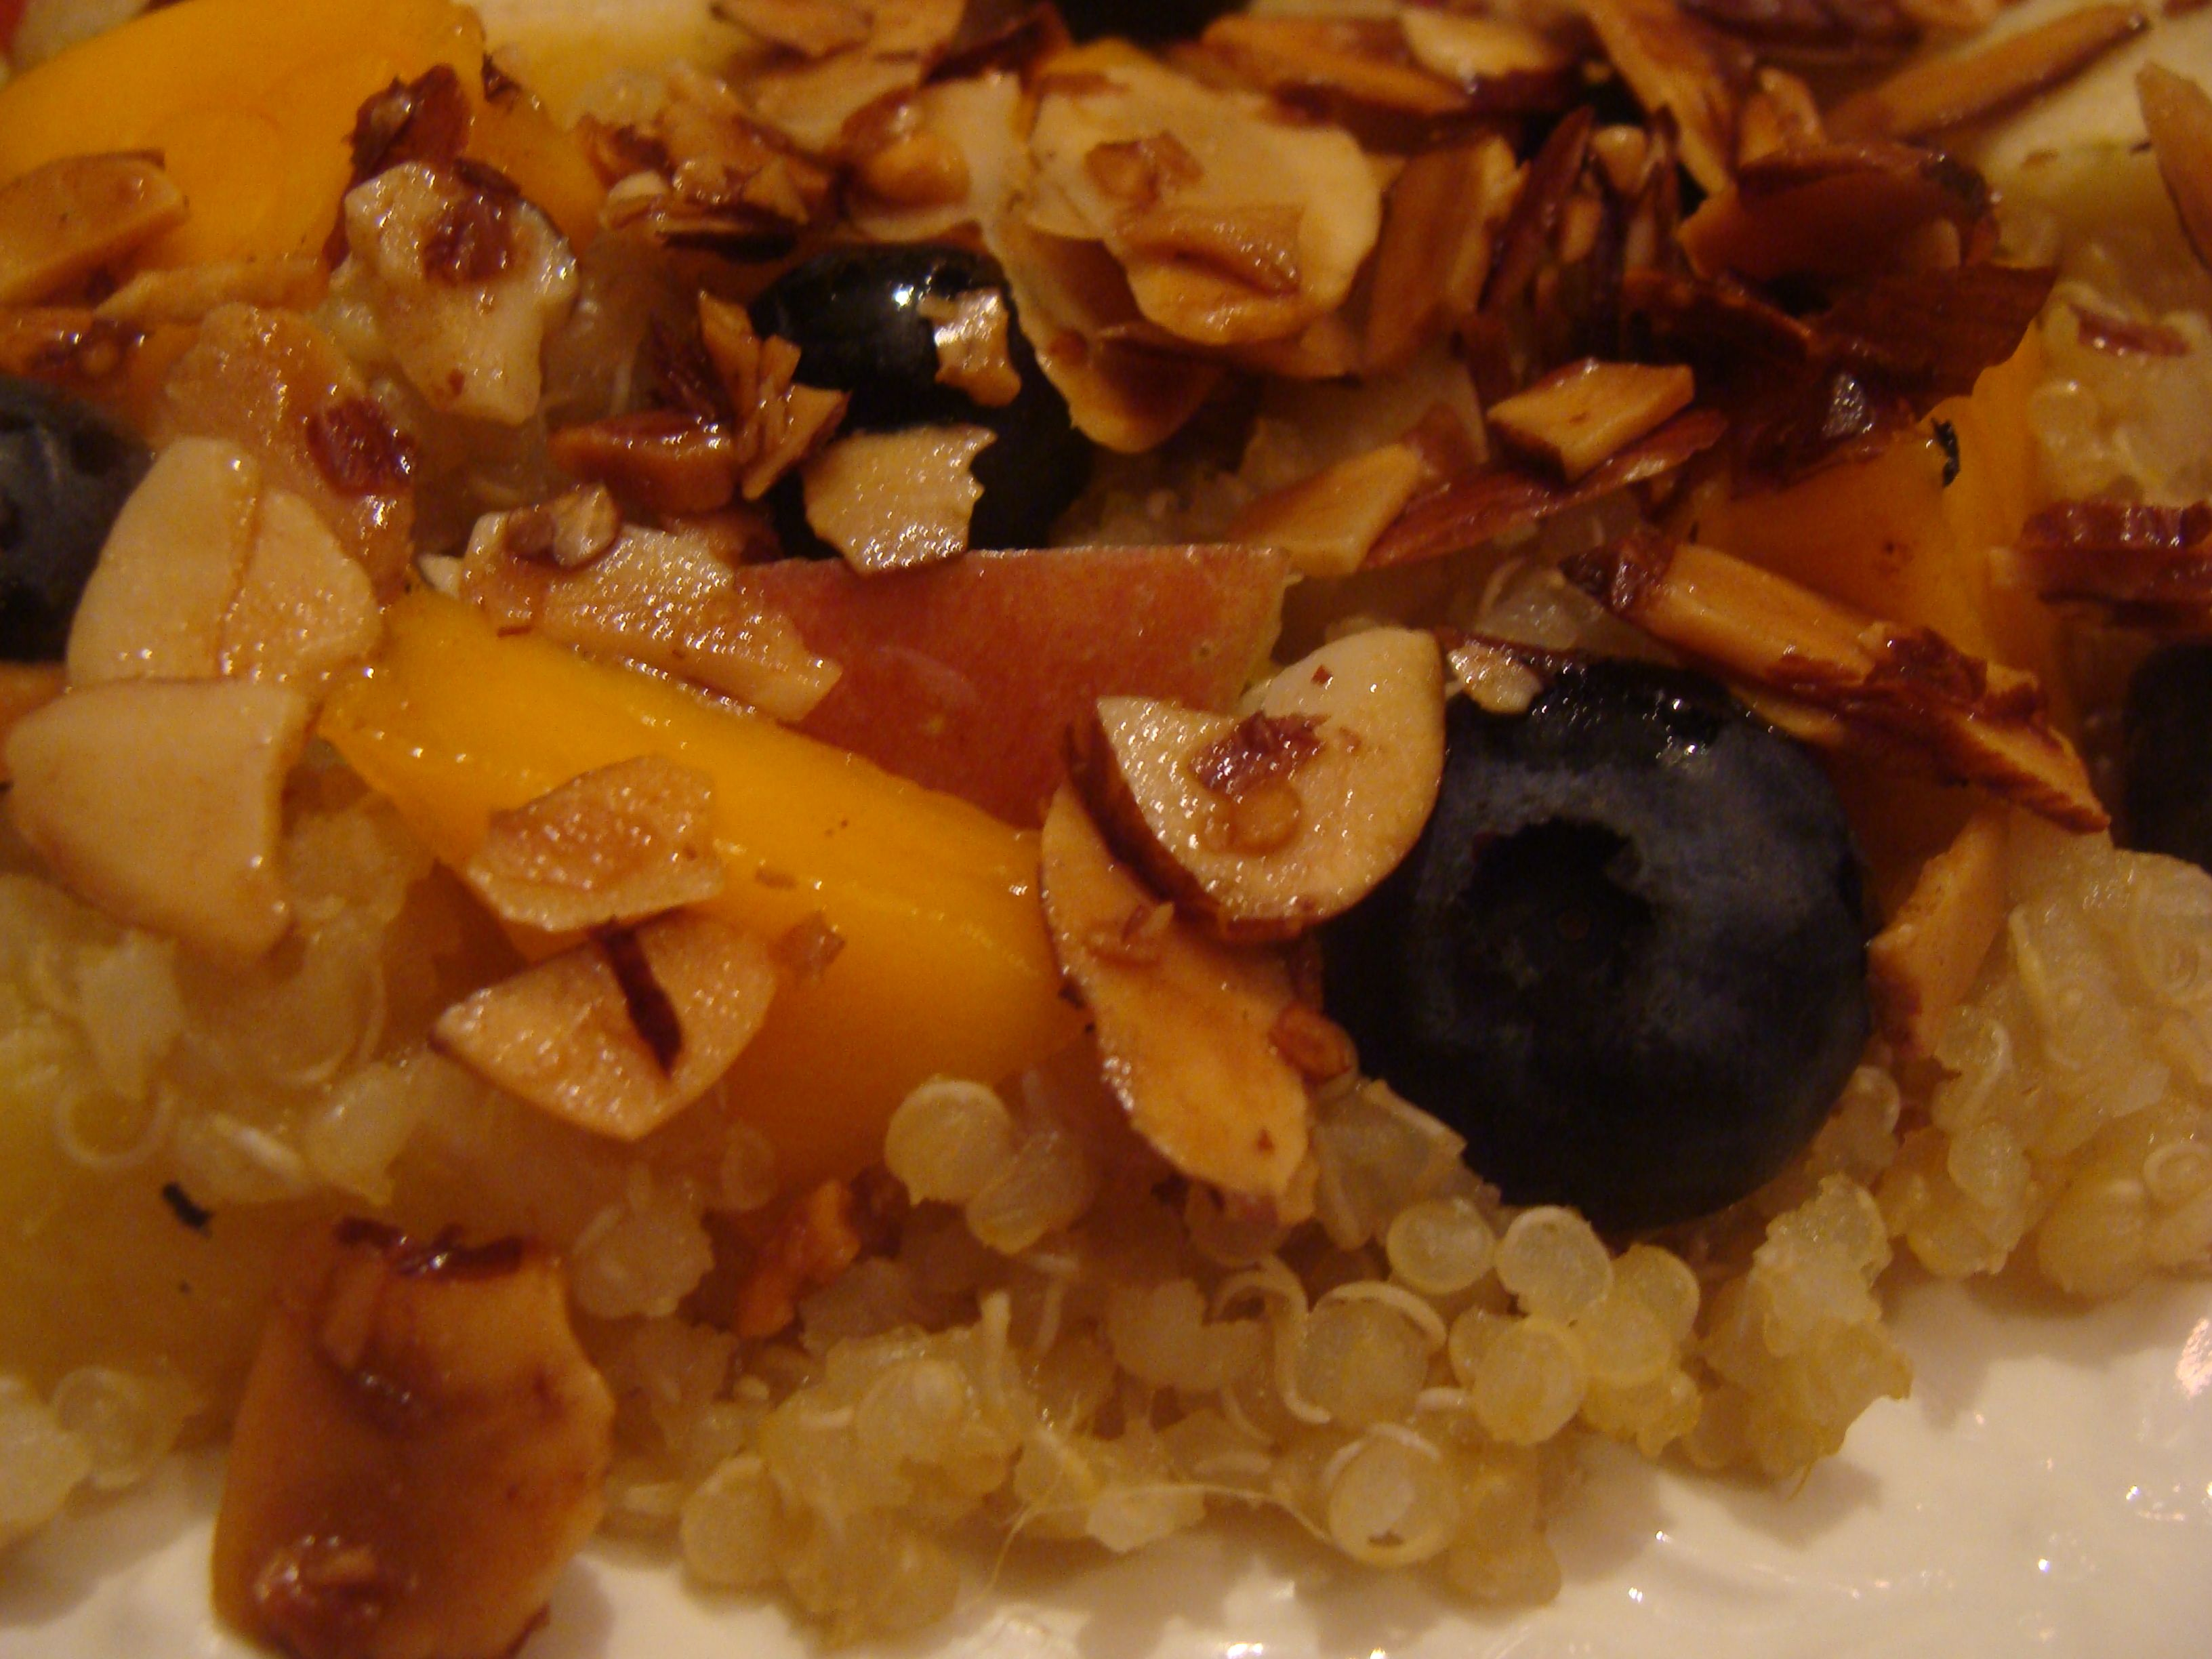 Quinoa, cooked with mango, apple and pineapple.  Served with fresh blueberries, mango, apple, pineapple, and topped with toasted almonds.